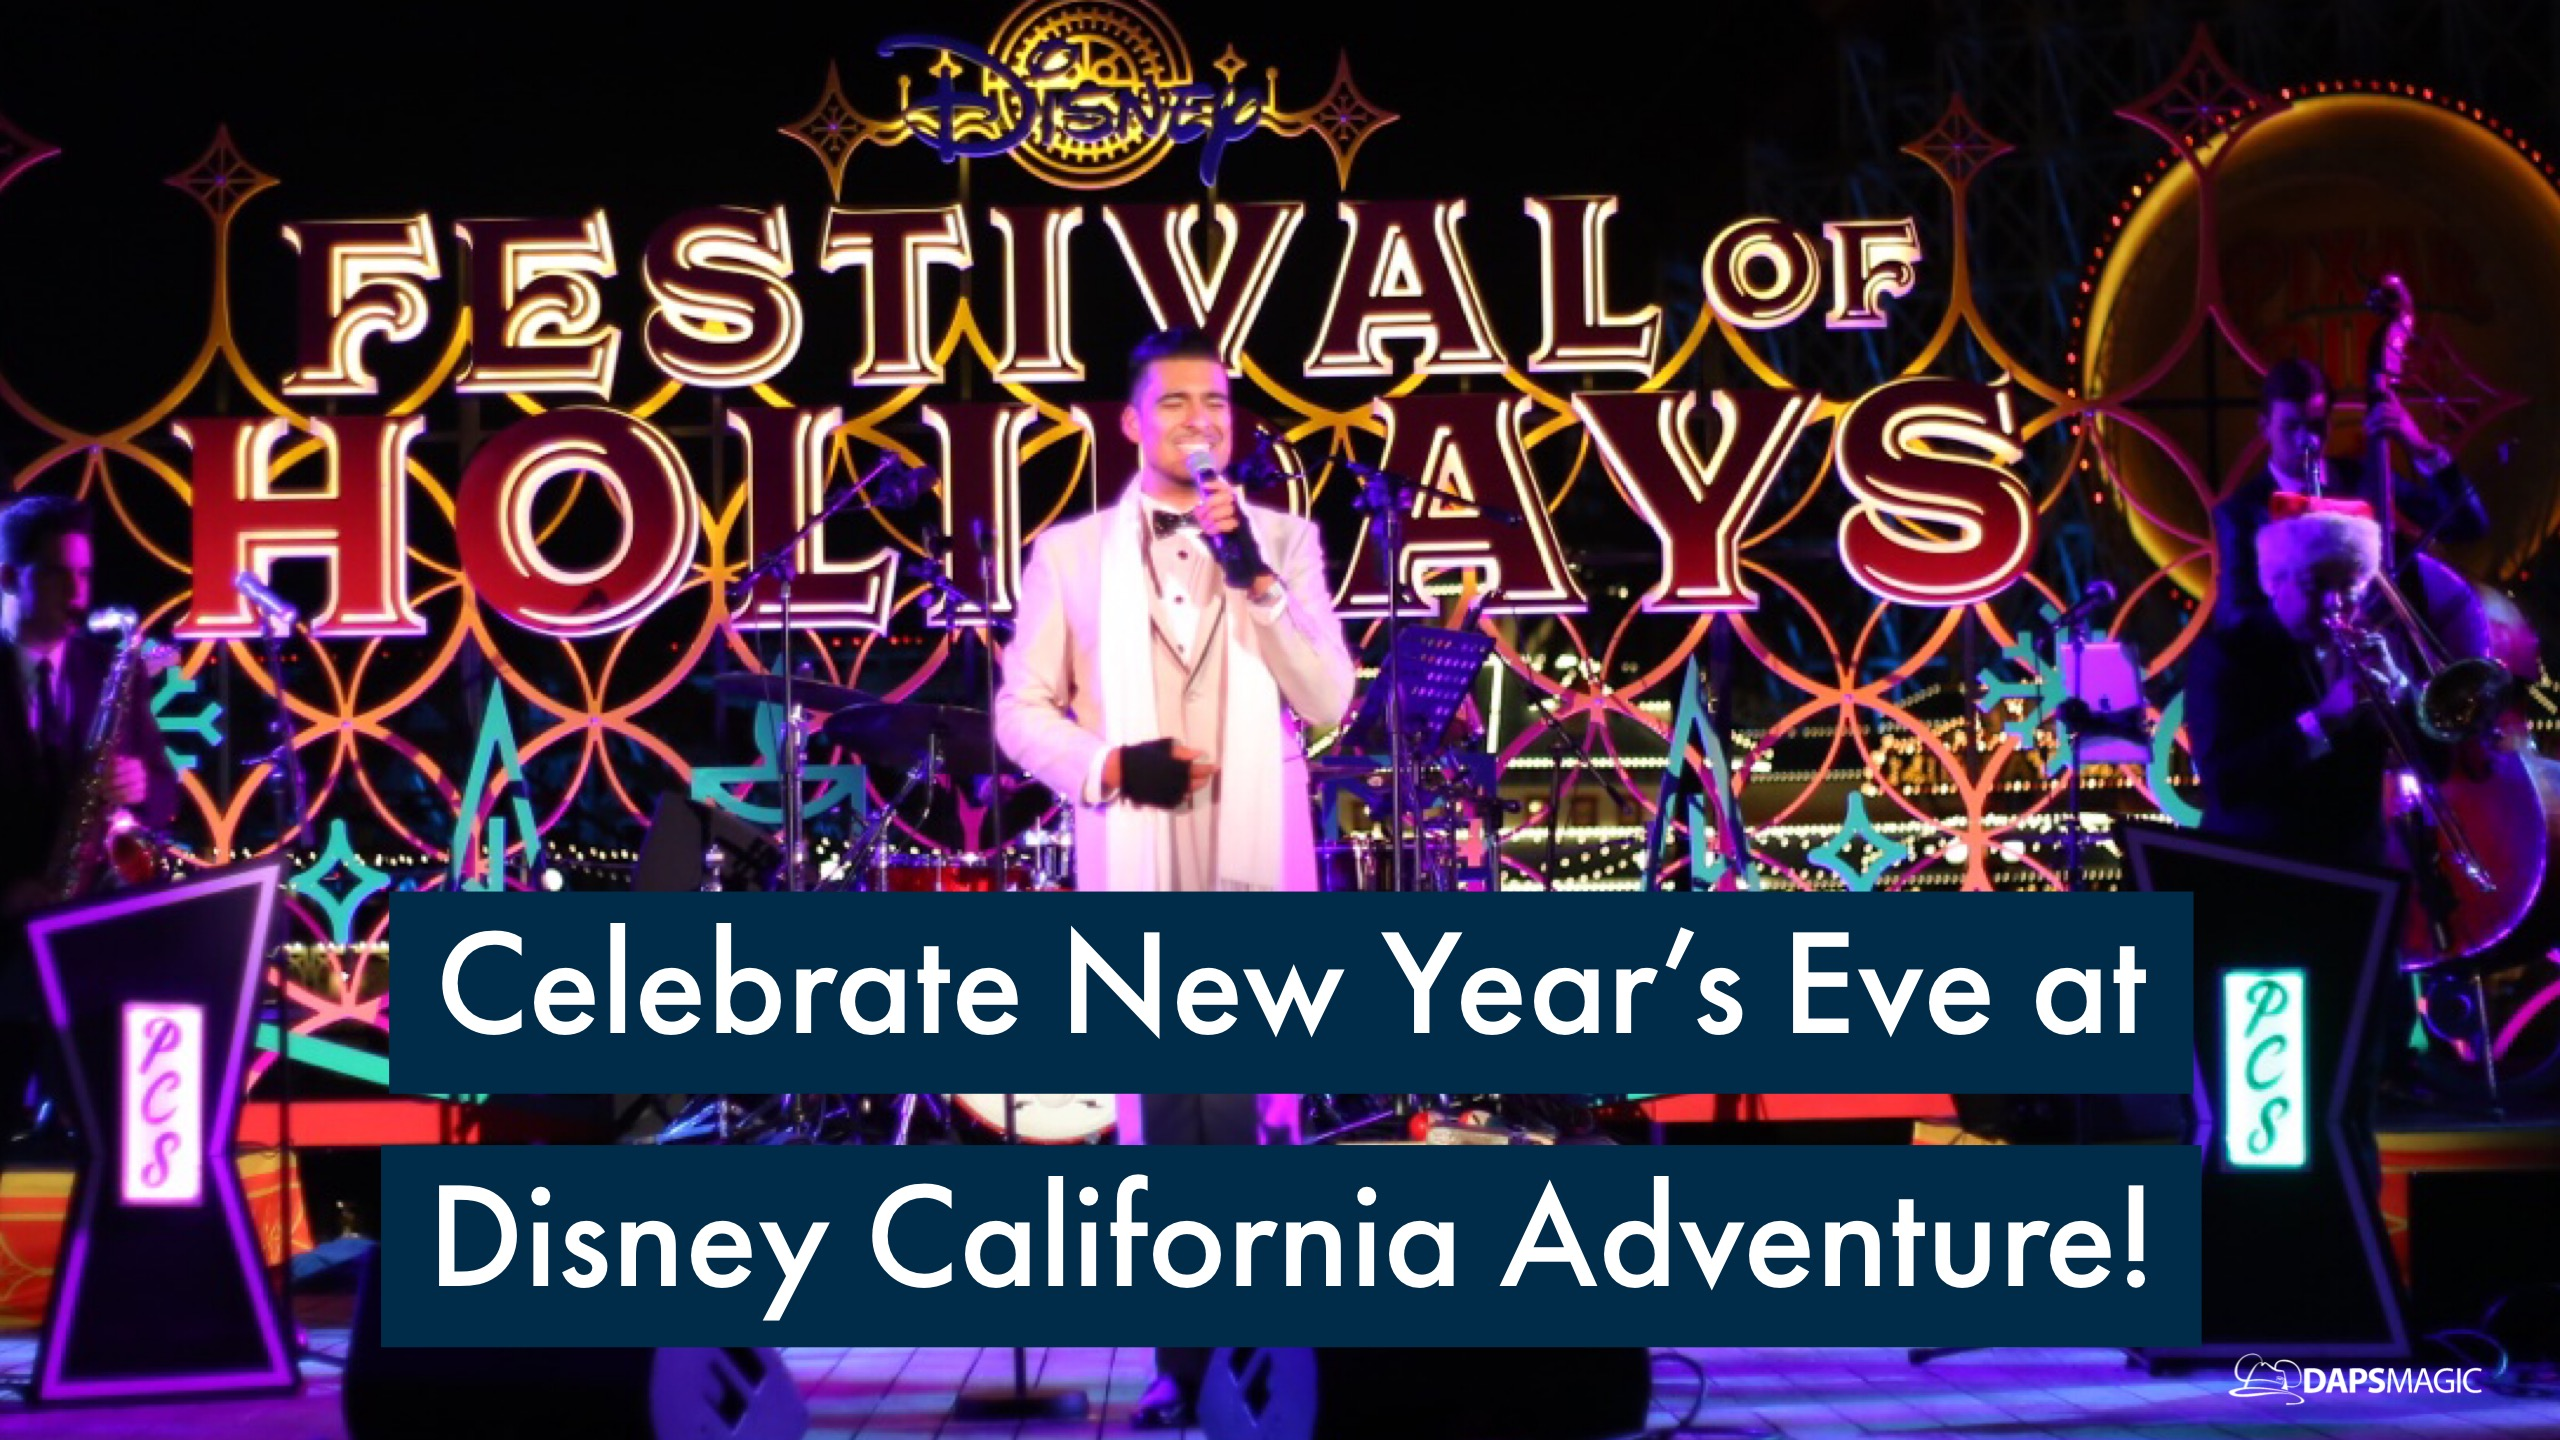 Ring in the New Year at Disney California Adventure!